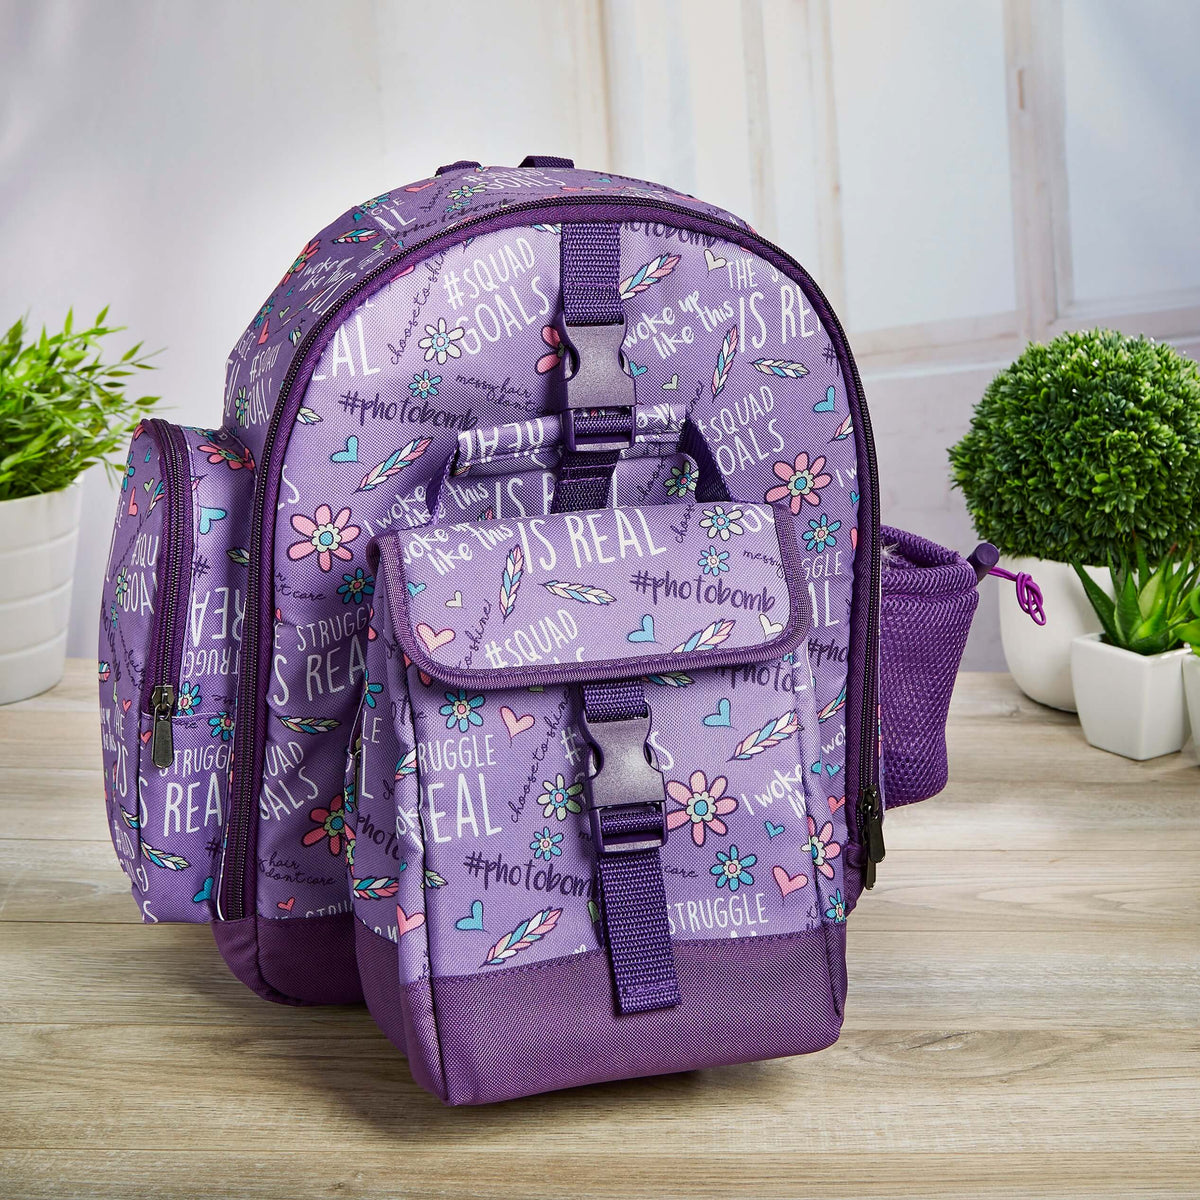 Kids' School Backpack & Matching Insulated